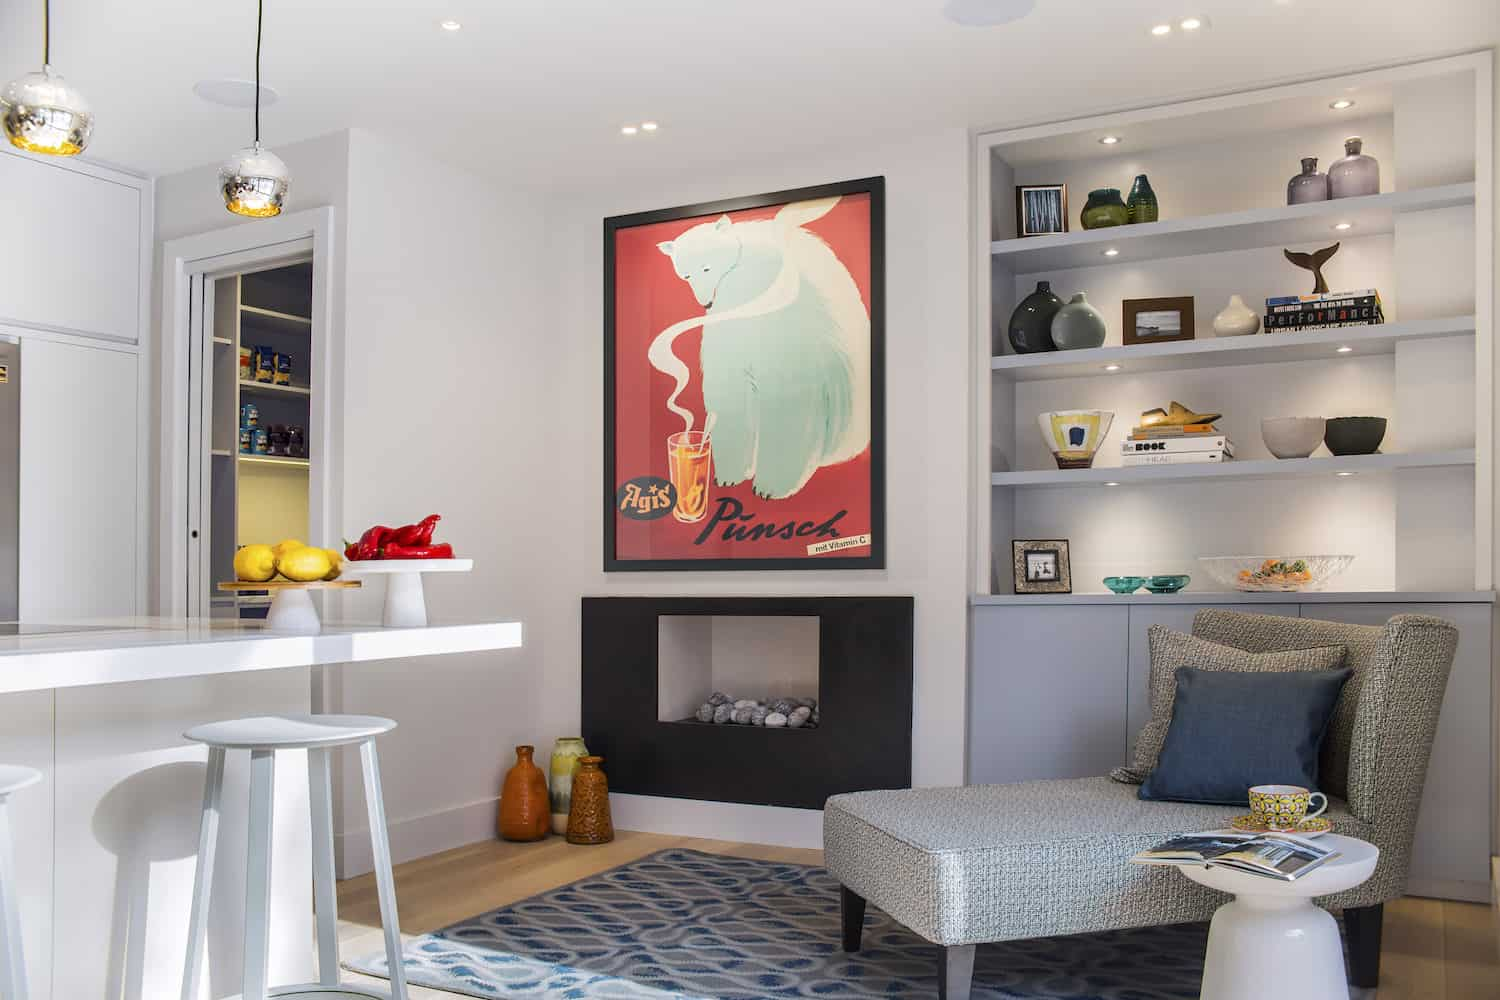 After - 1F - Kitchen - Fireplace + Chaise + Joinery Unit - LLI Design